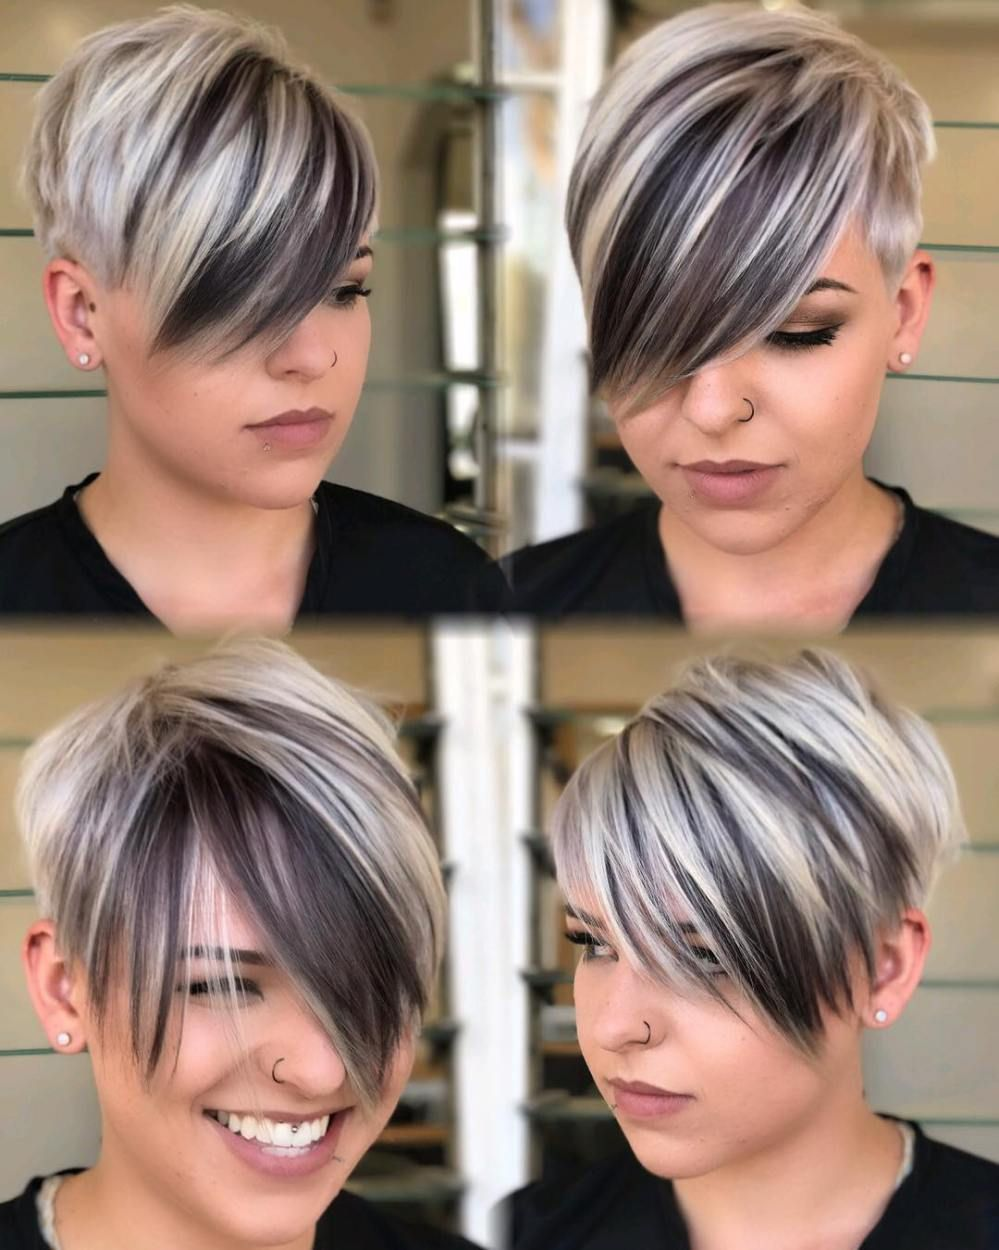 50 Super Cute Looks with Short Hairstyles for Roun